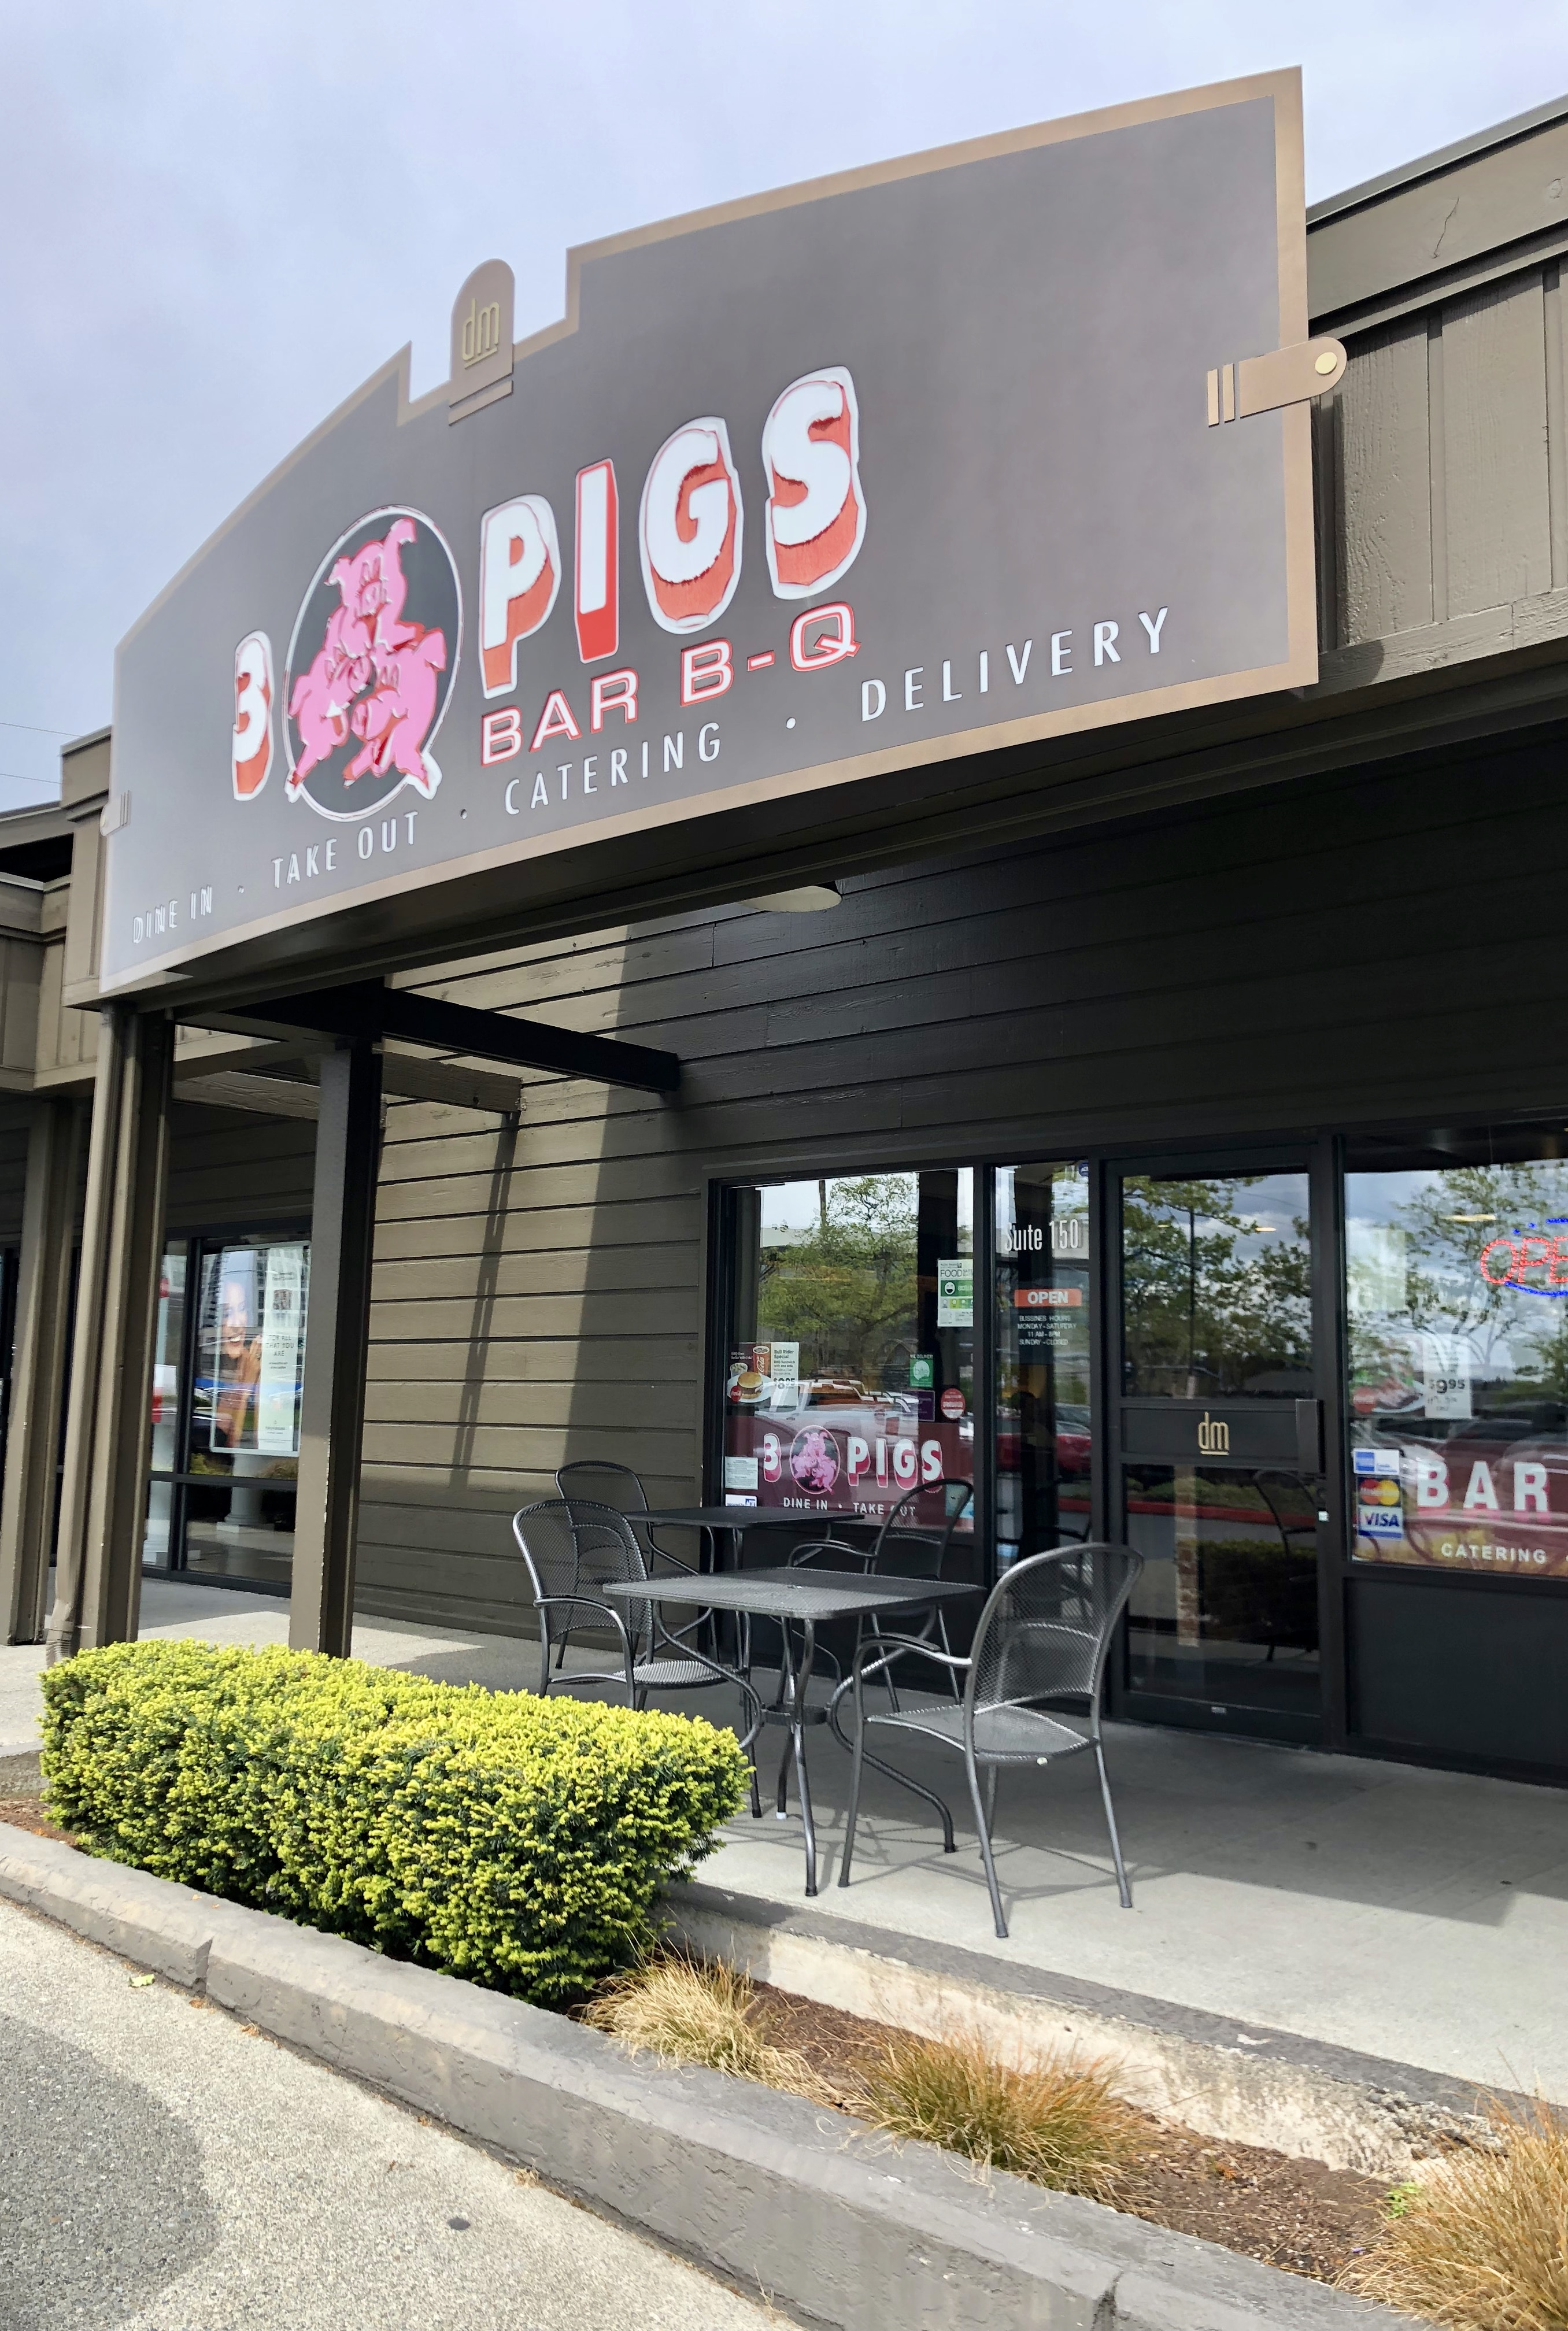 3 Pigs Street View